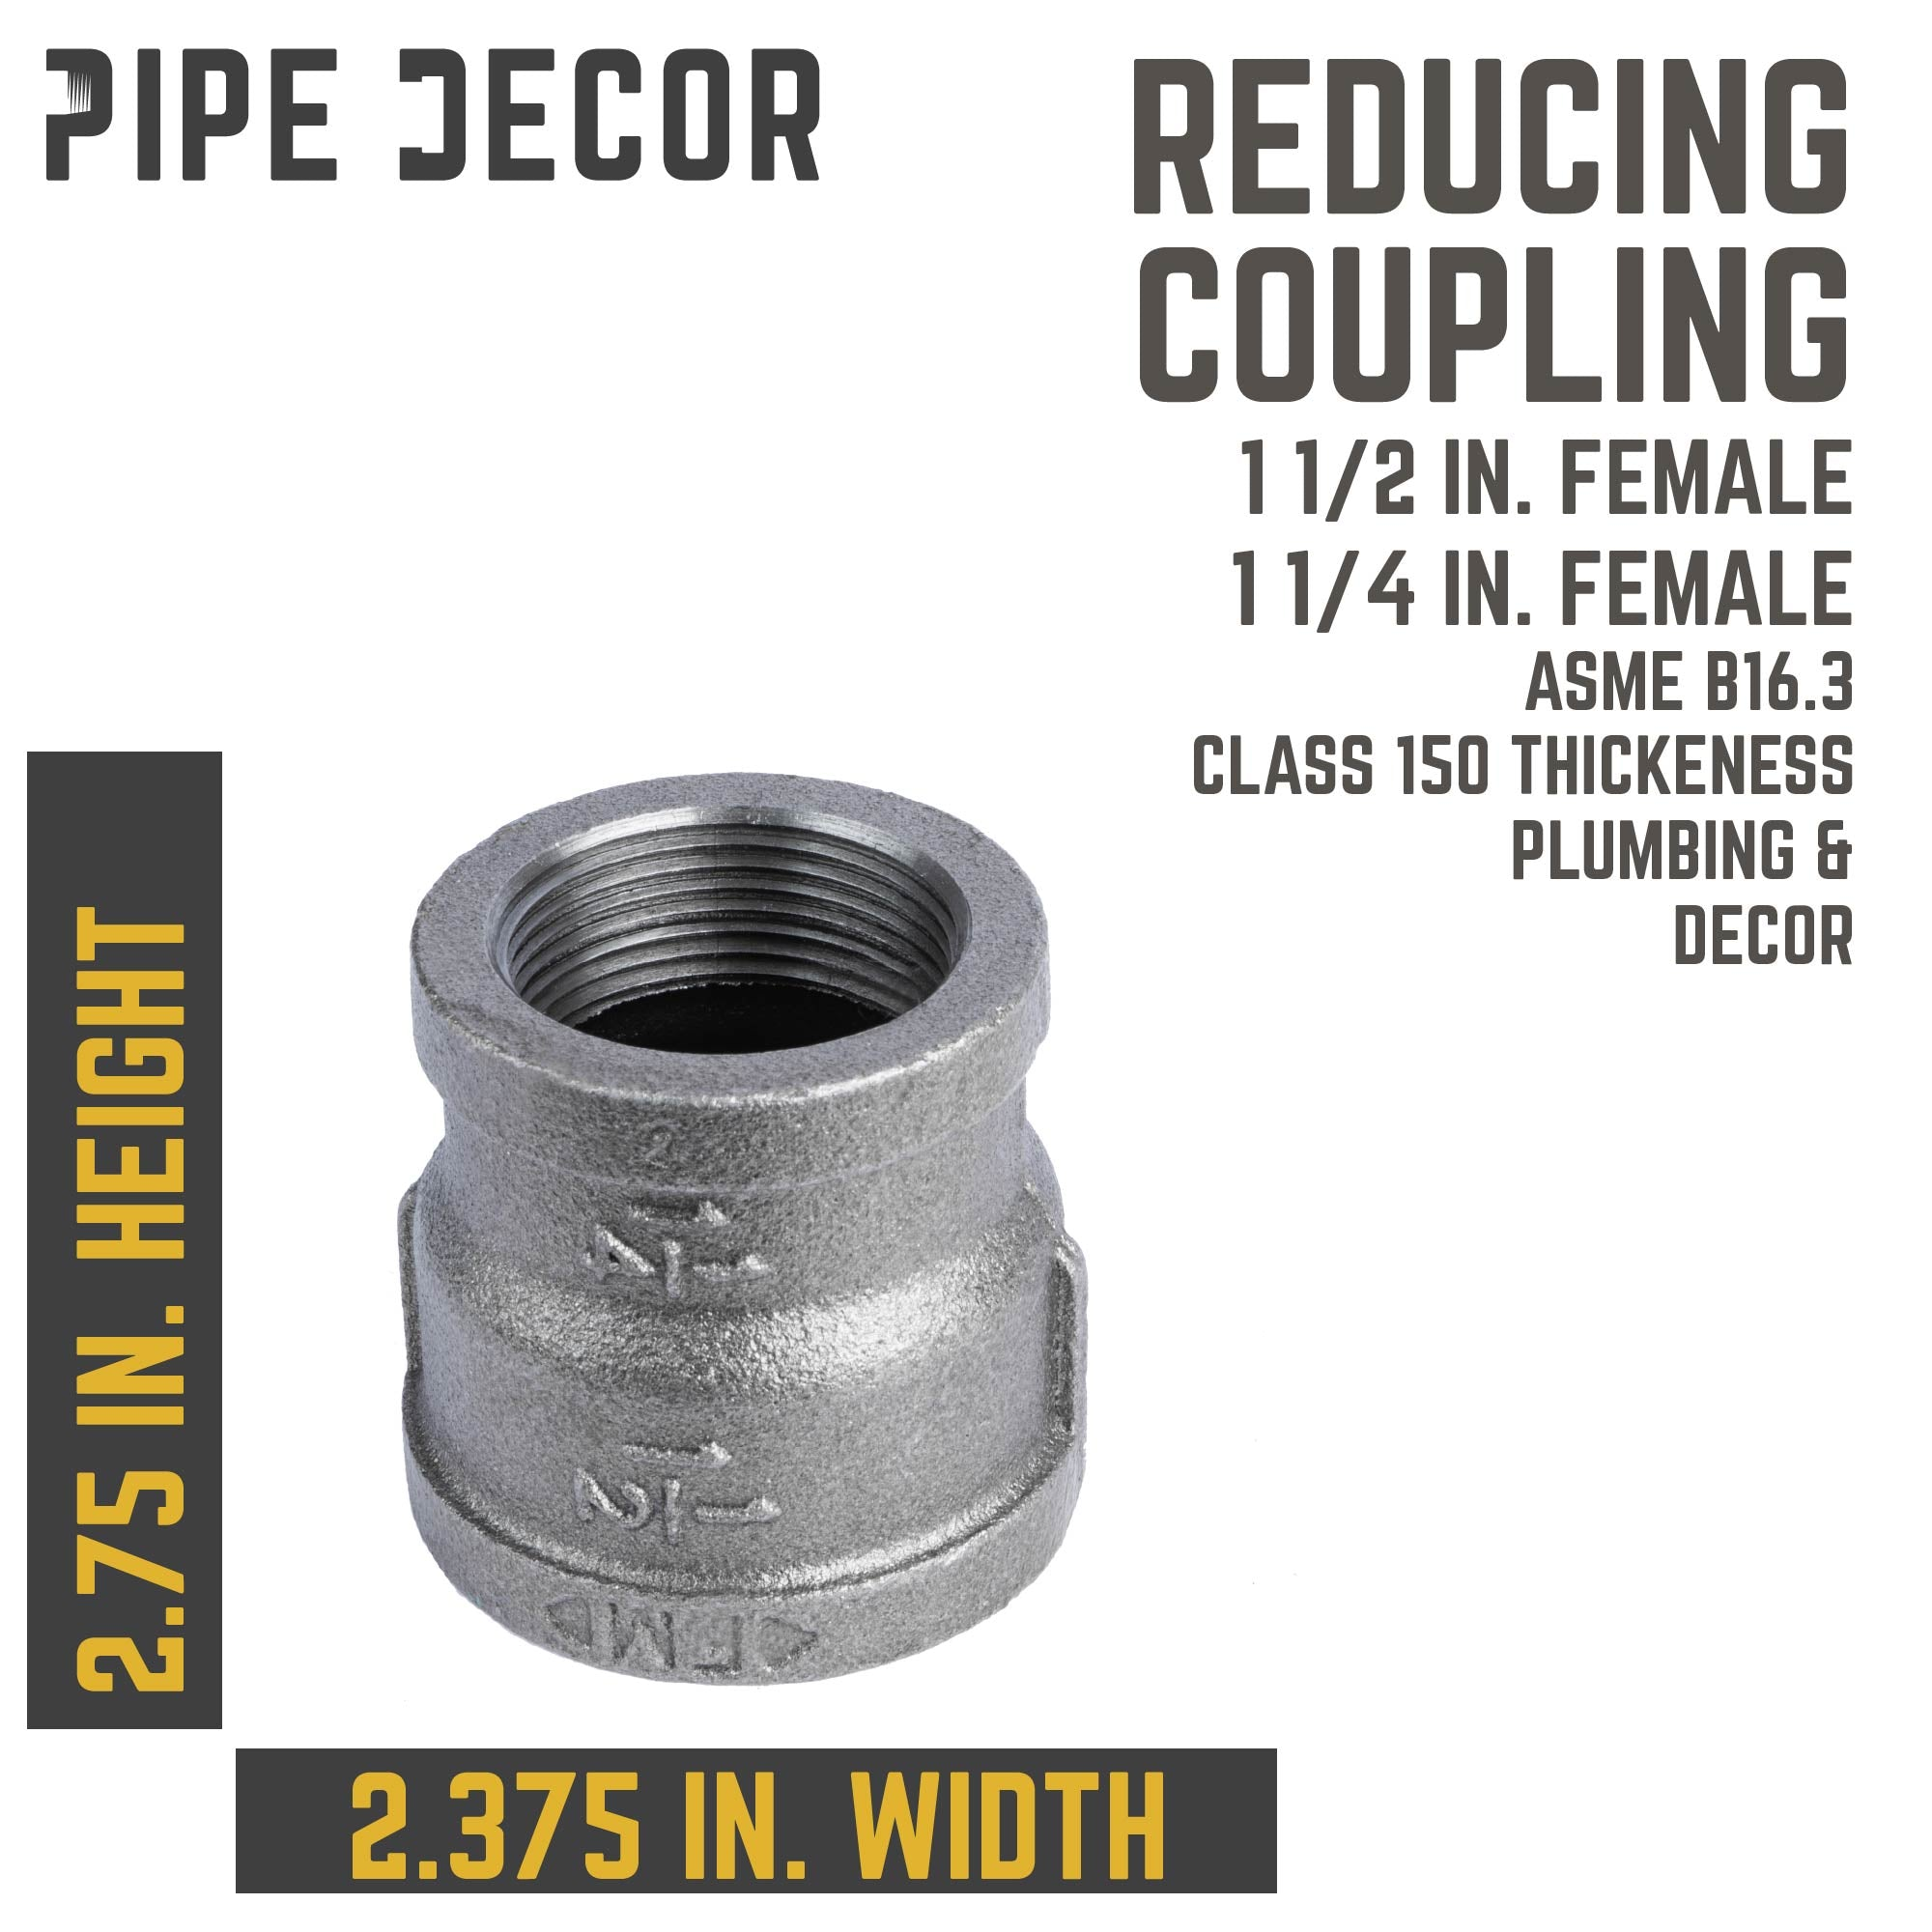 1 1/2 in.  X 11/4 in. Black Reducing Coupling - Pipe Decor